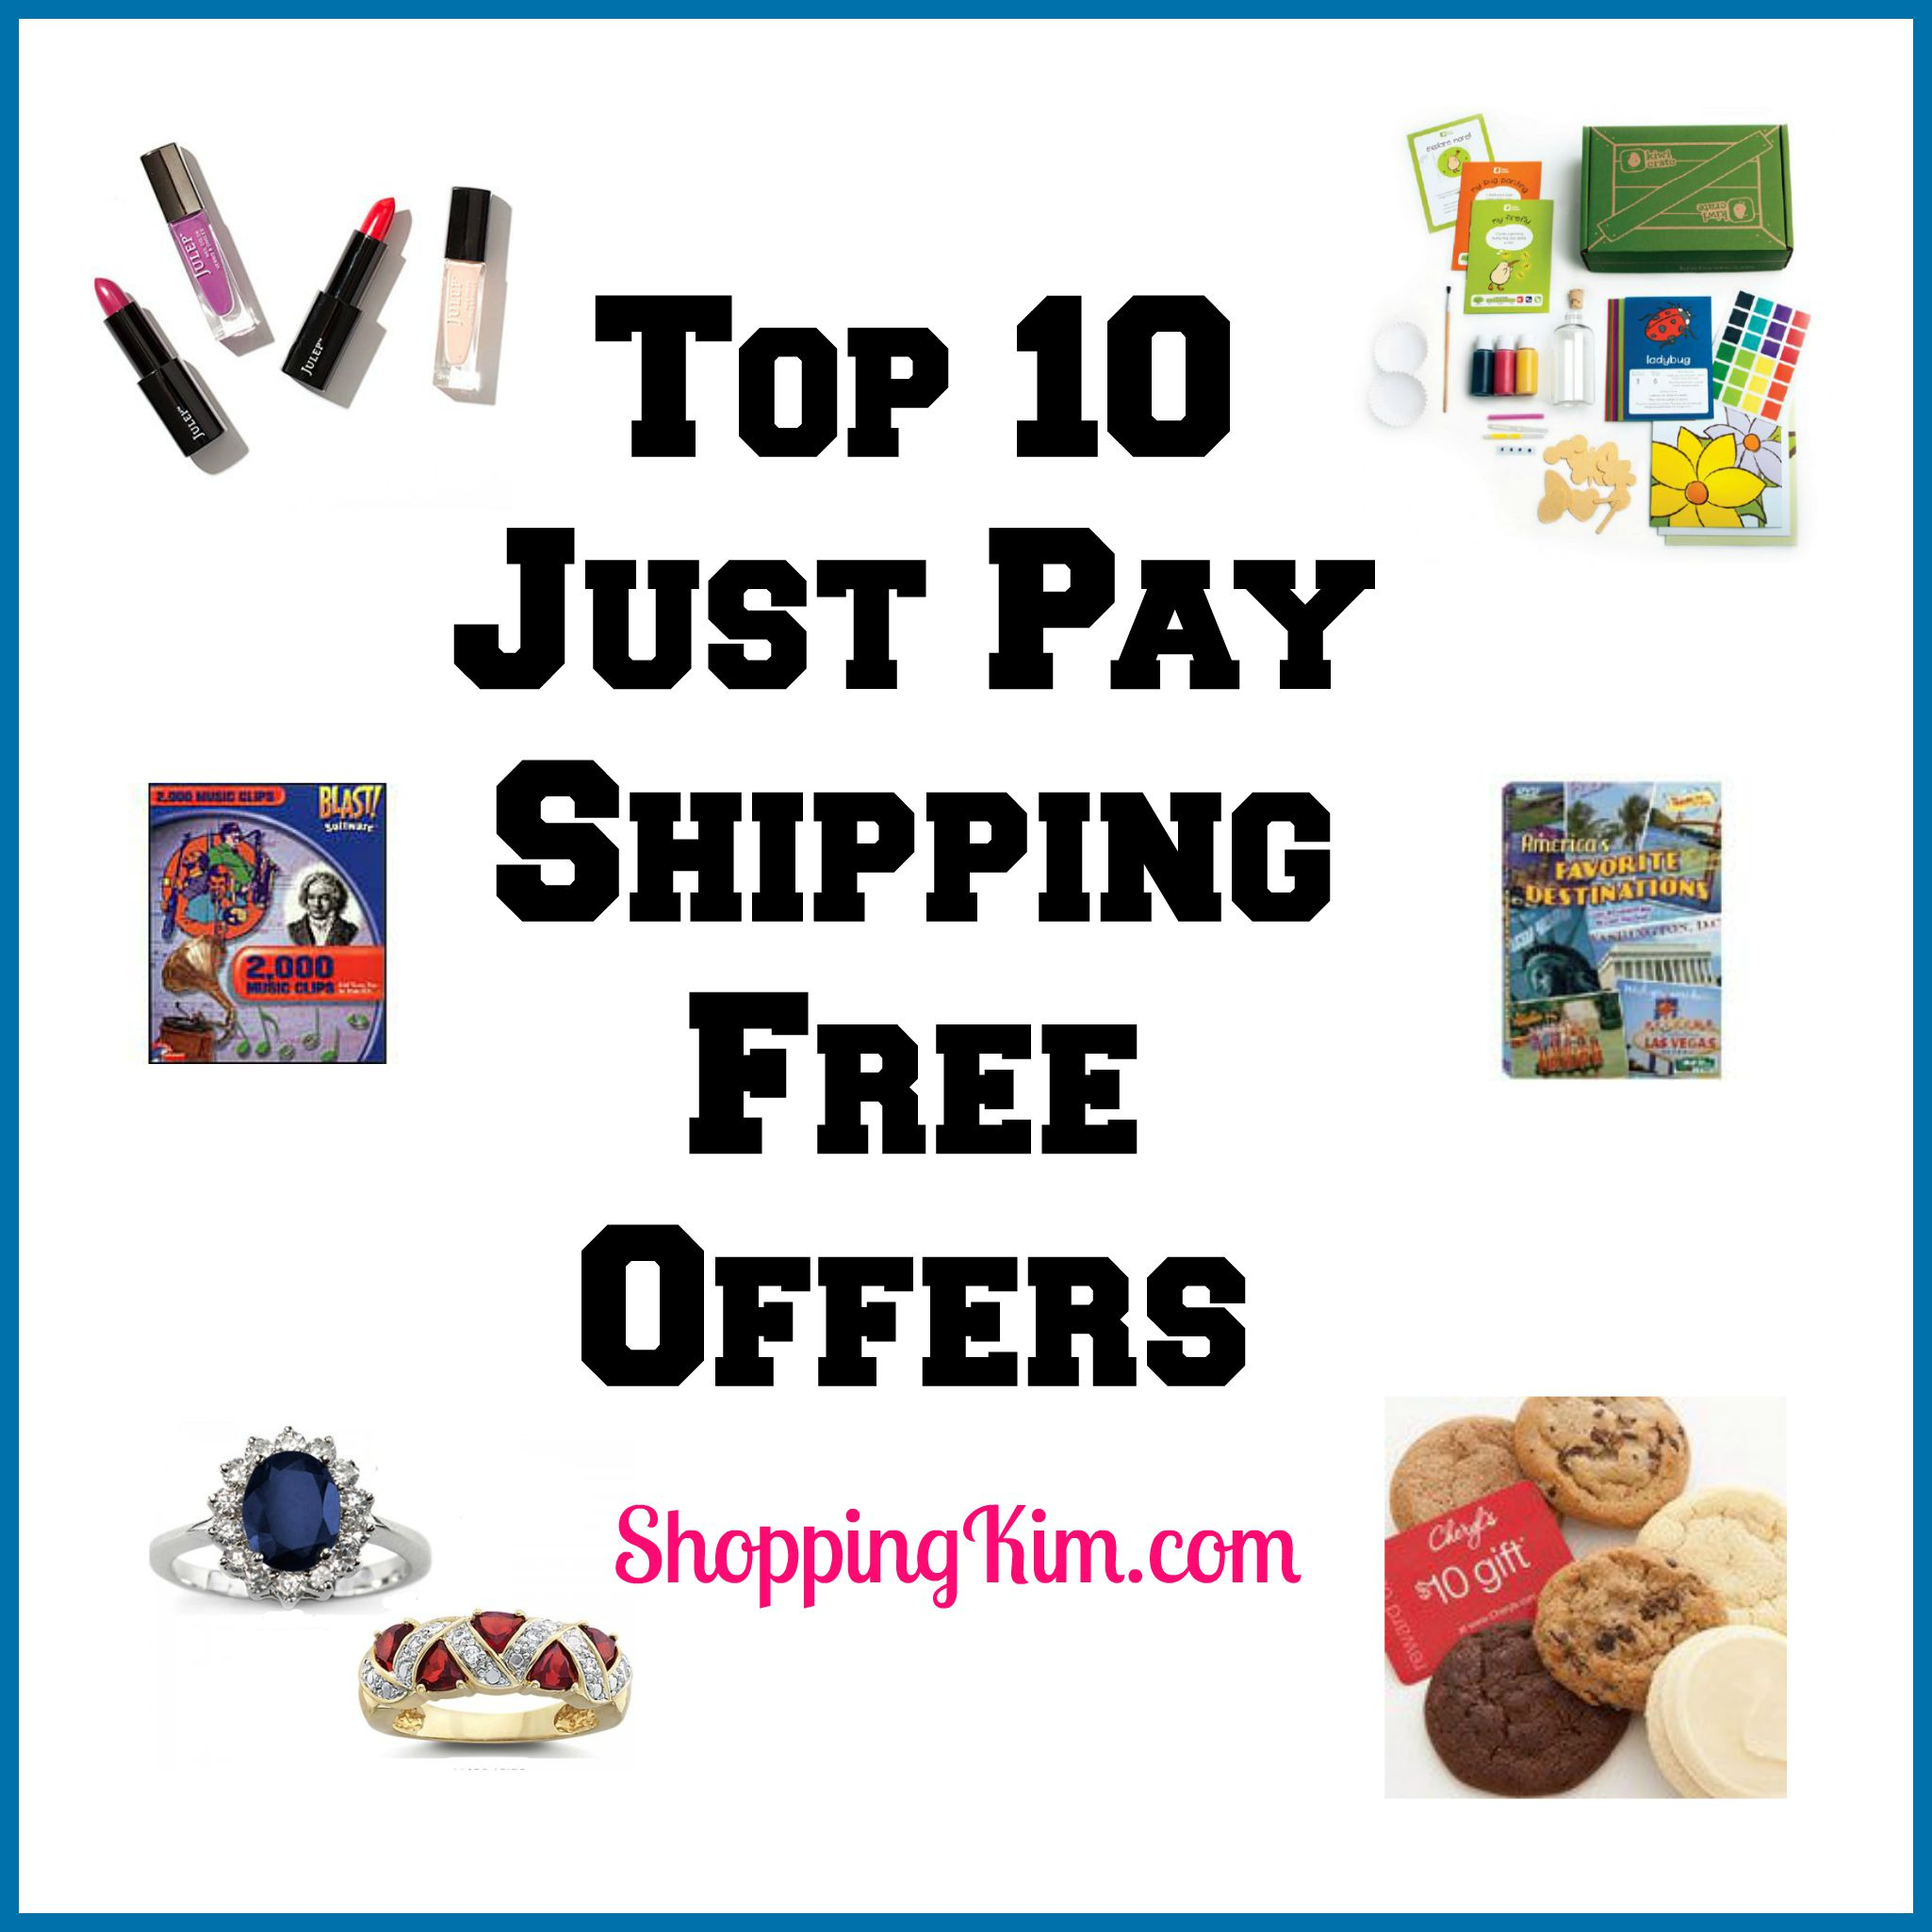 Top 10 Just Pay Shipping Free Offers